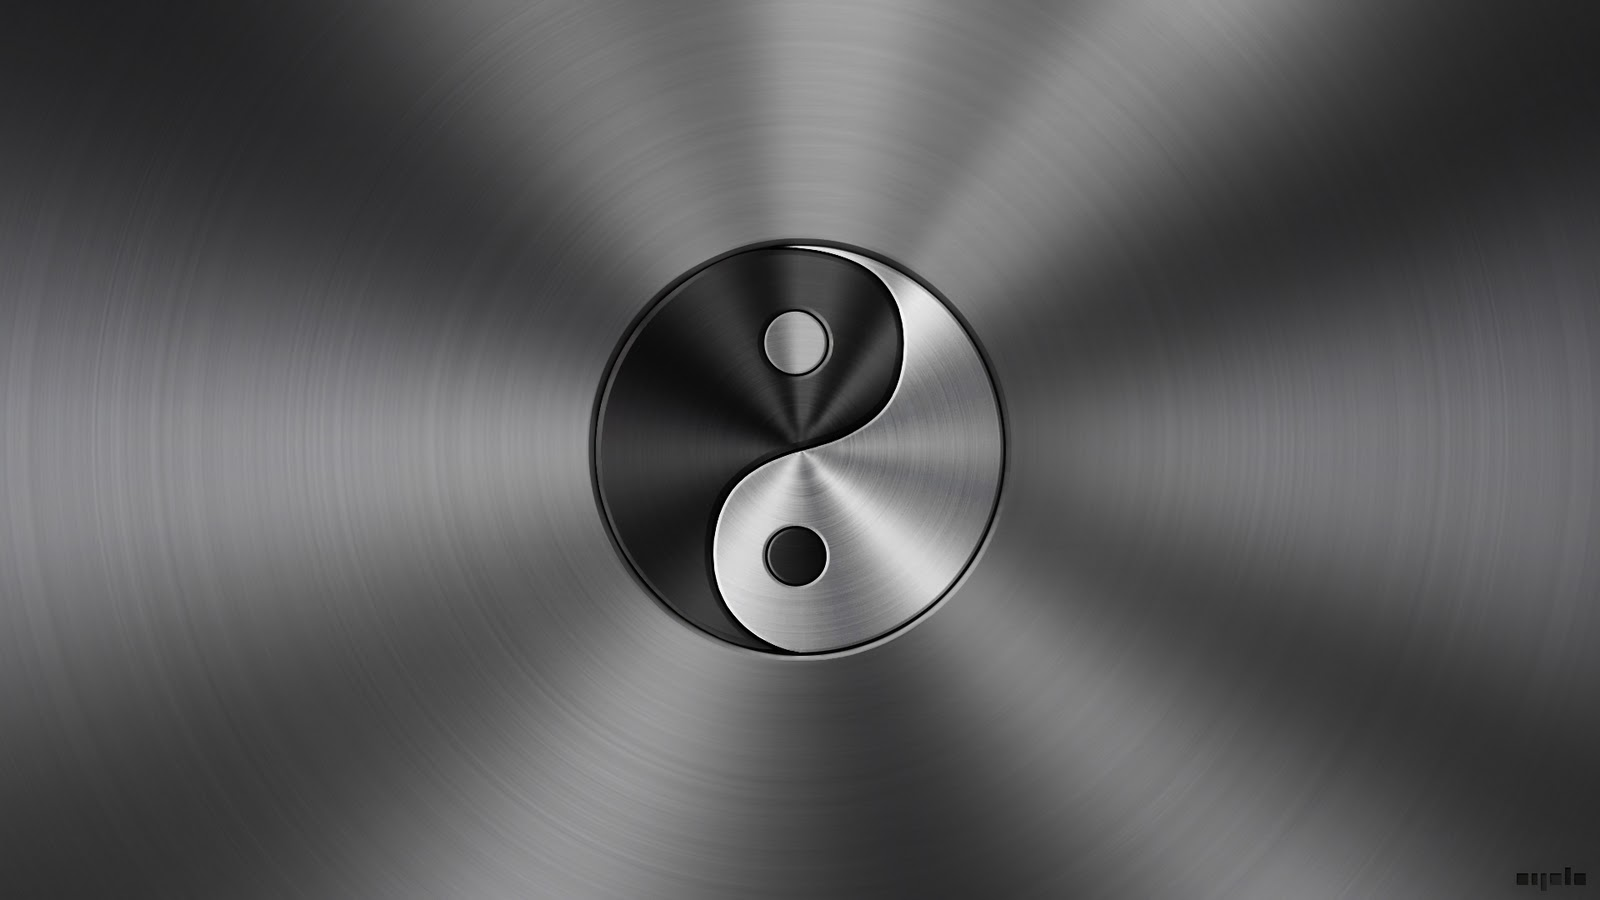 Om 3d Wallpaper Download Free Wallpicz Wallpaper Desktop Yin Yang